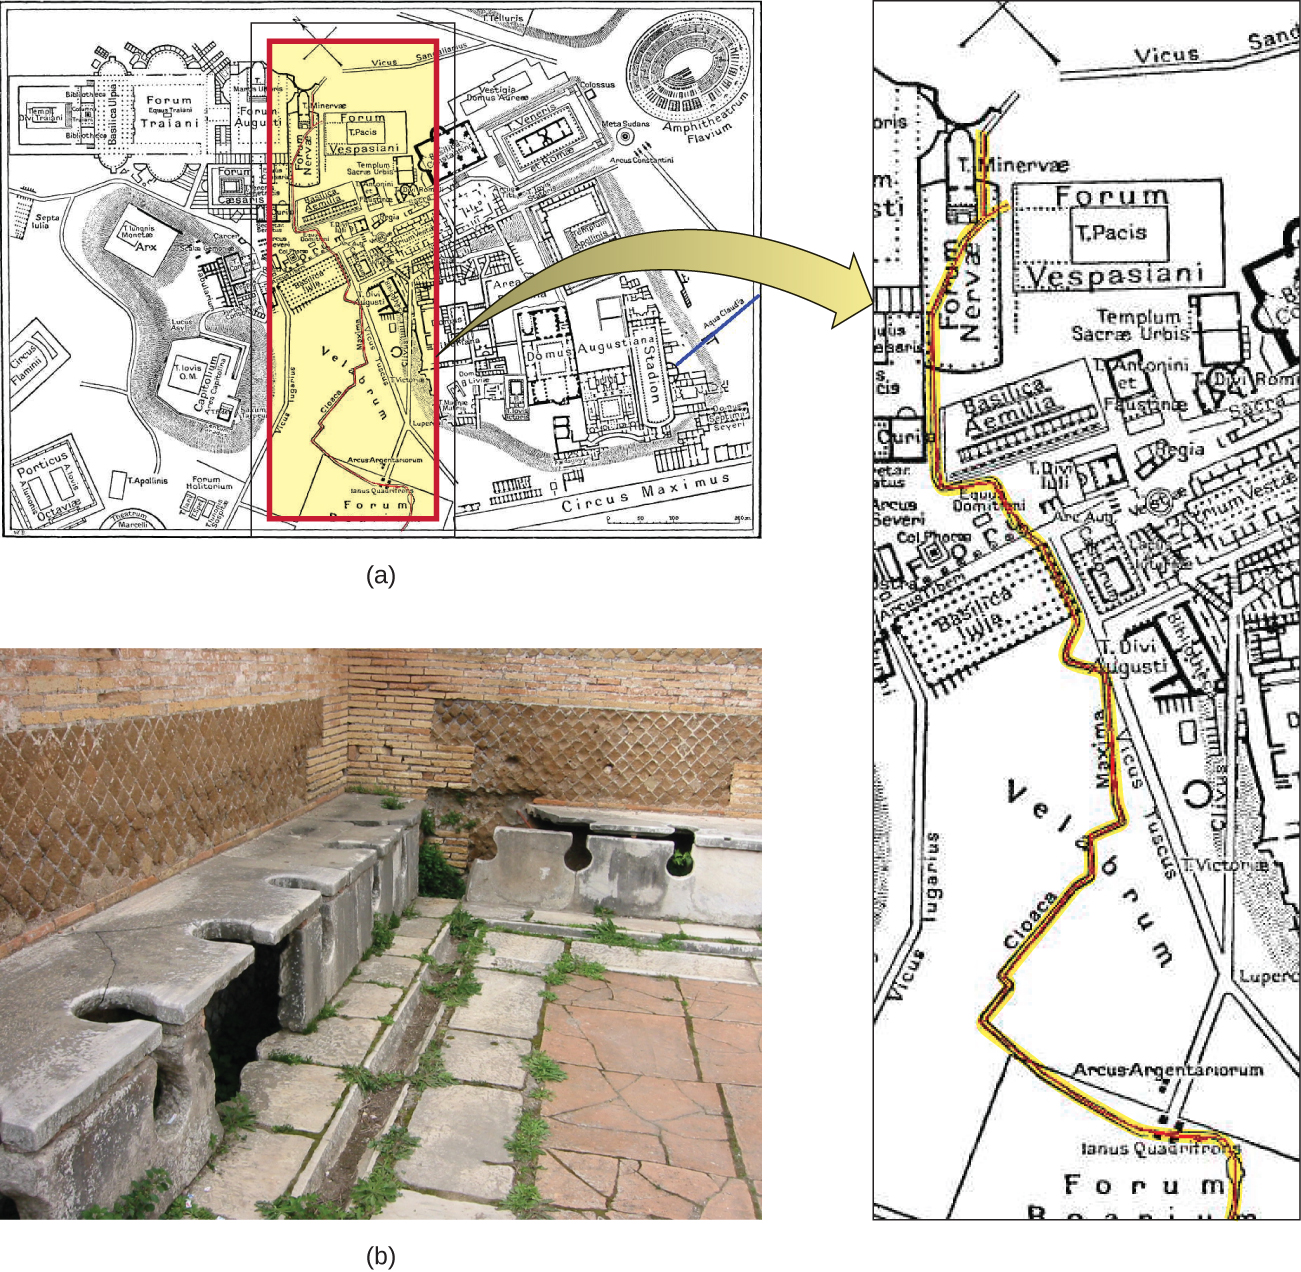 Figure a is a map of ancient Rome, showing the first sewer, which ran through the centre of the city. Figure b shows ancient latrines that carried waste away from the city and into the river Tiber.